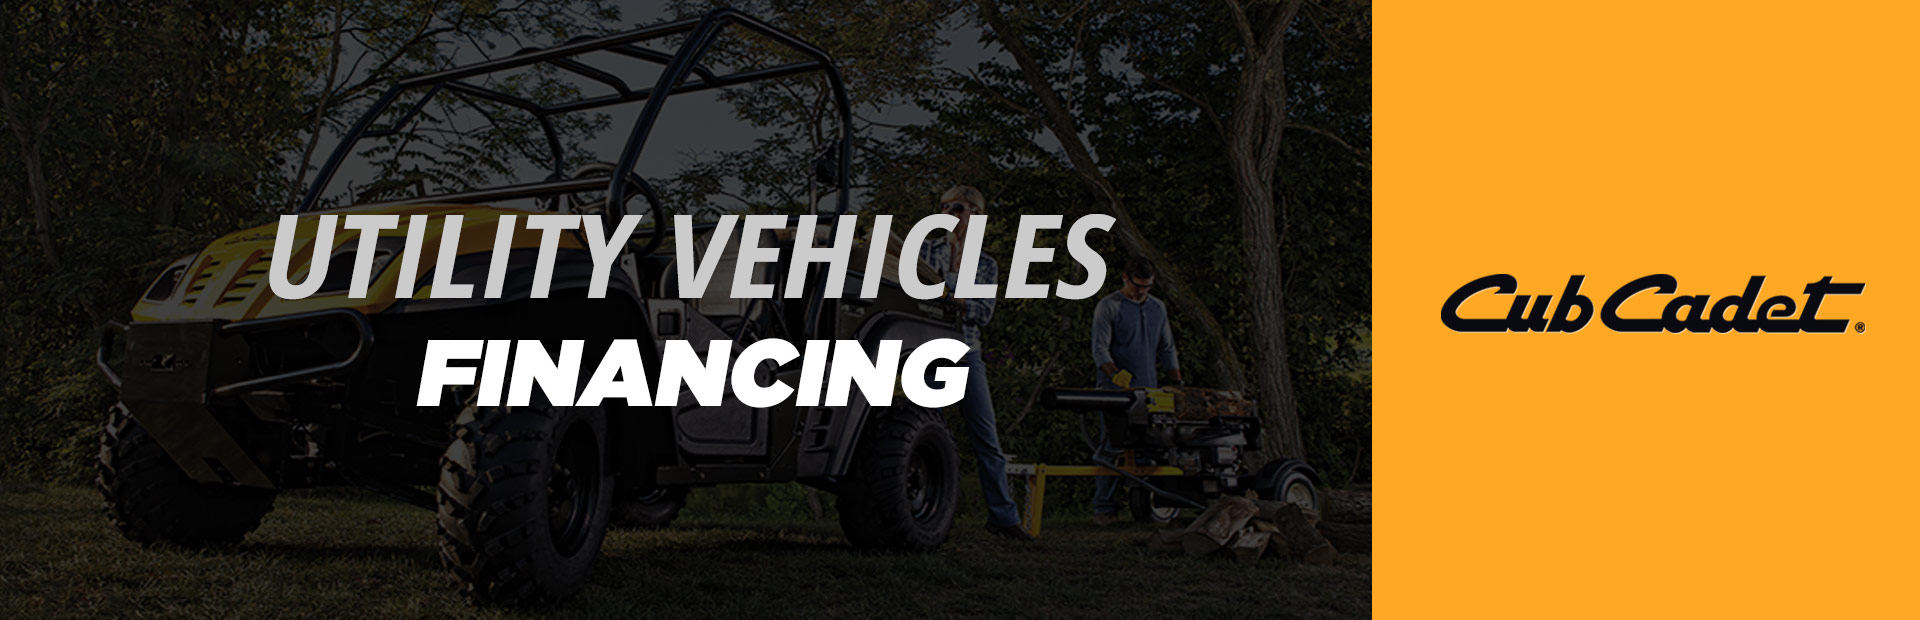 Cub Cadet: Utility Vehicles Financing